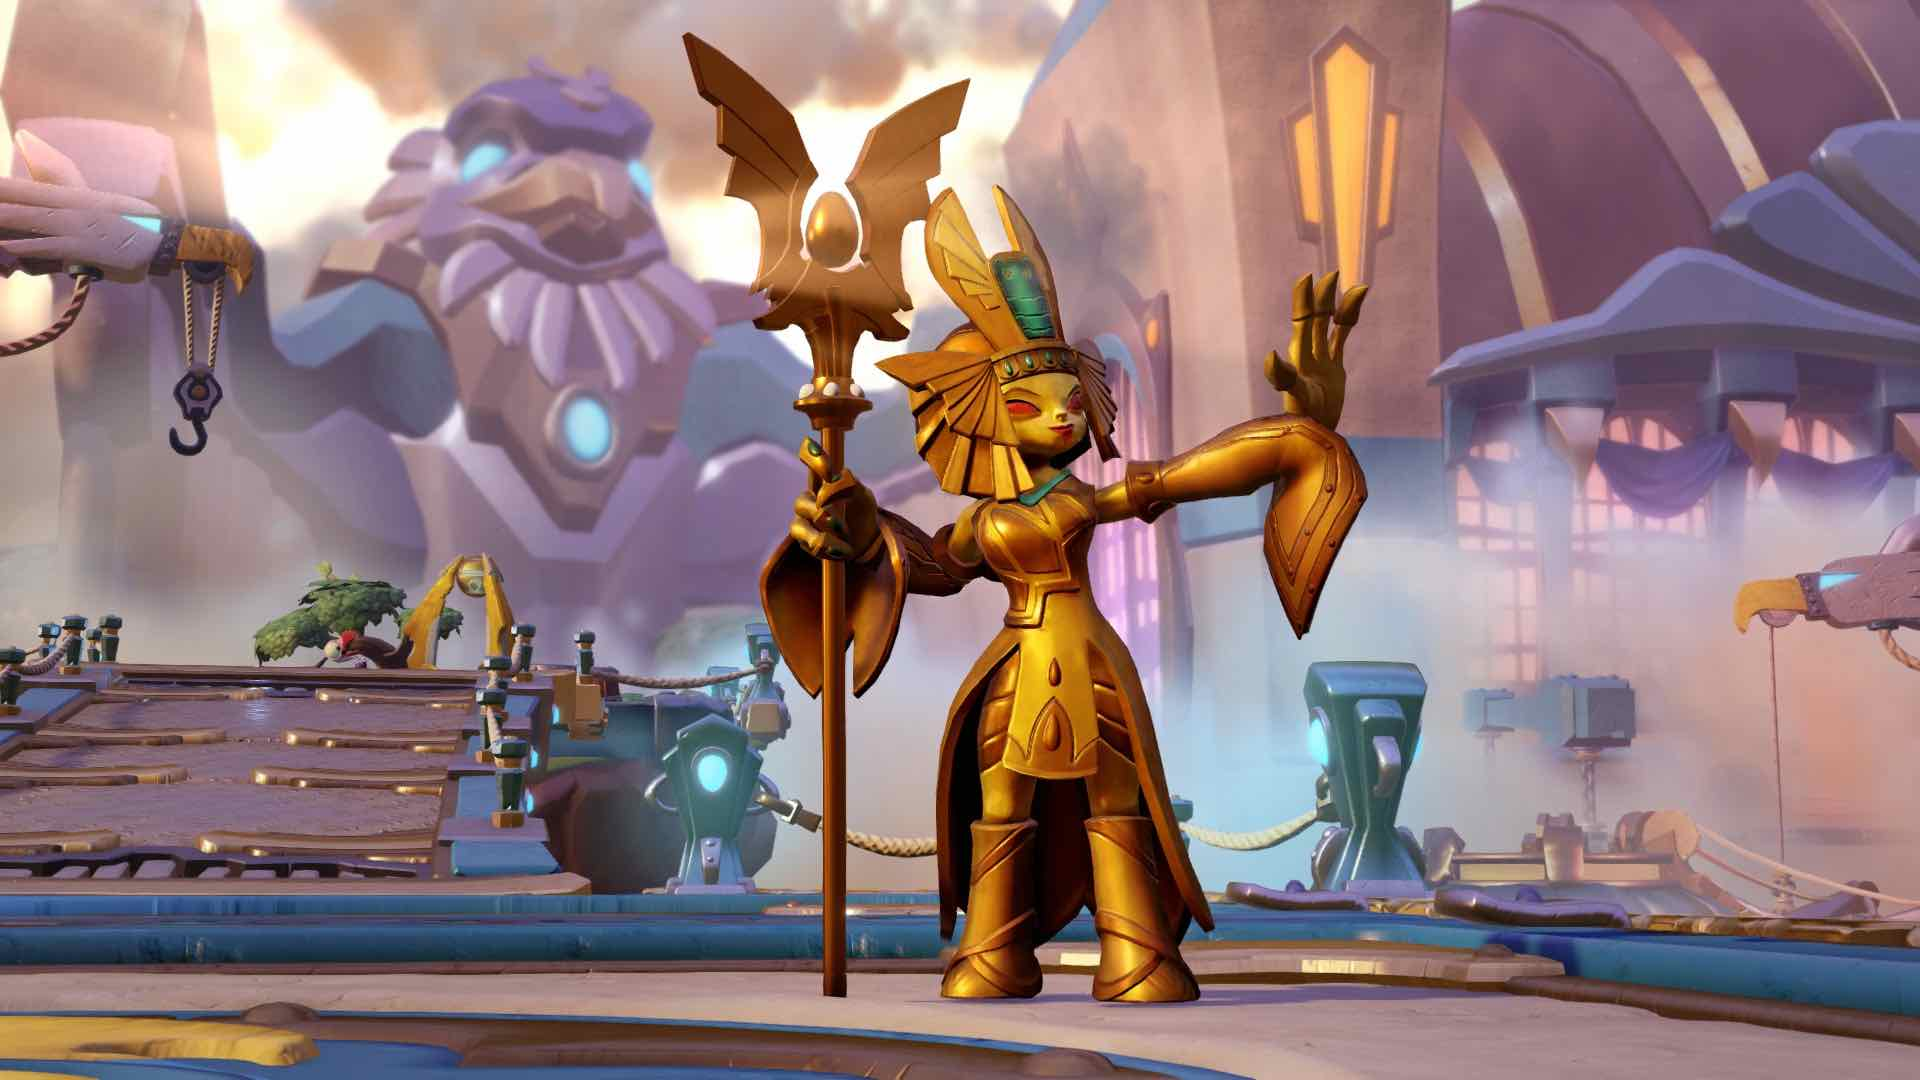 Skylanders Imaginators Review – Switch – Nintendo Insider on dora the explorer map, iron man map, sesame street map, batman map, my little pony map, epic mickey map, maplestory map, angry birds map, princess map, world of warcraft map, the simpsons map, adventure time map, call of duty map, star trek map, need for speed map, portal map, winnie the pooh map, assassins creed map, doctor who map, hello kitty map,